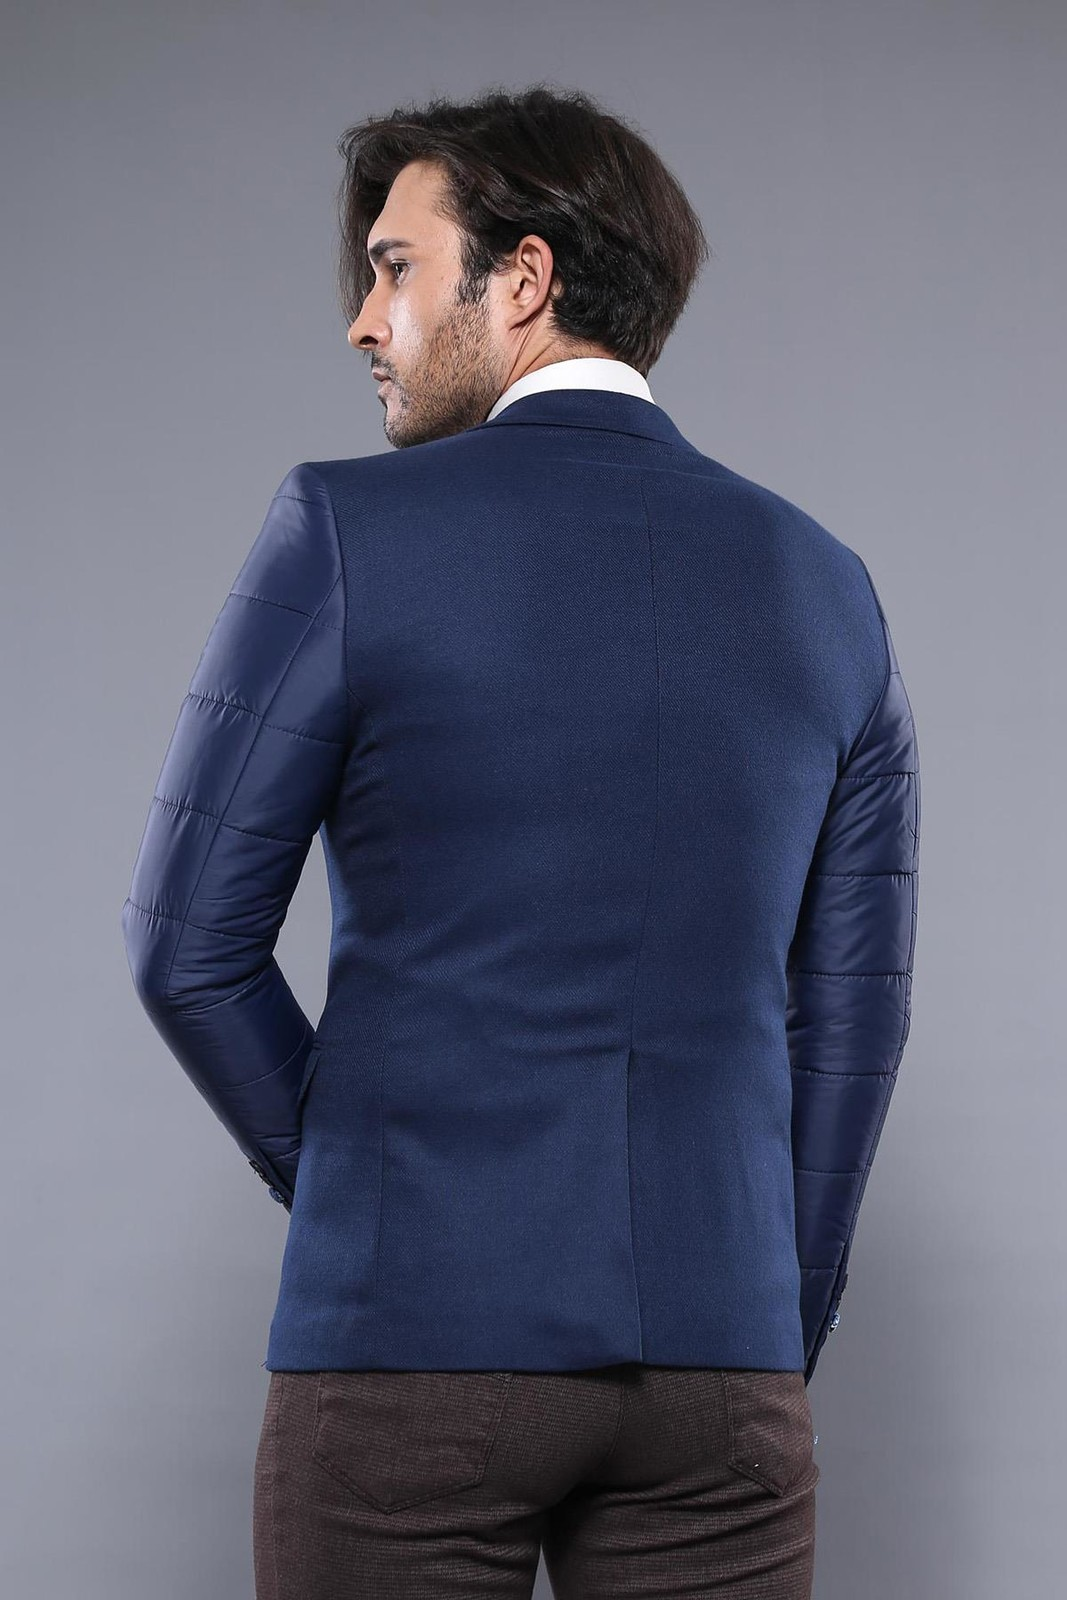 Quilted Sleeve and Back Blue Jacket | Wessi